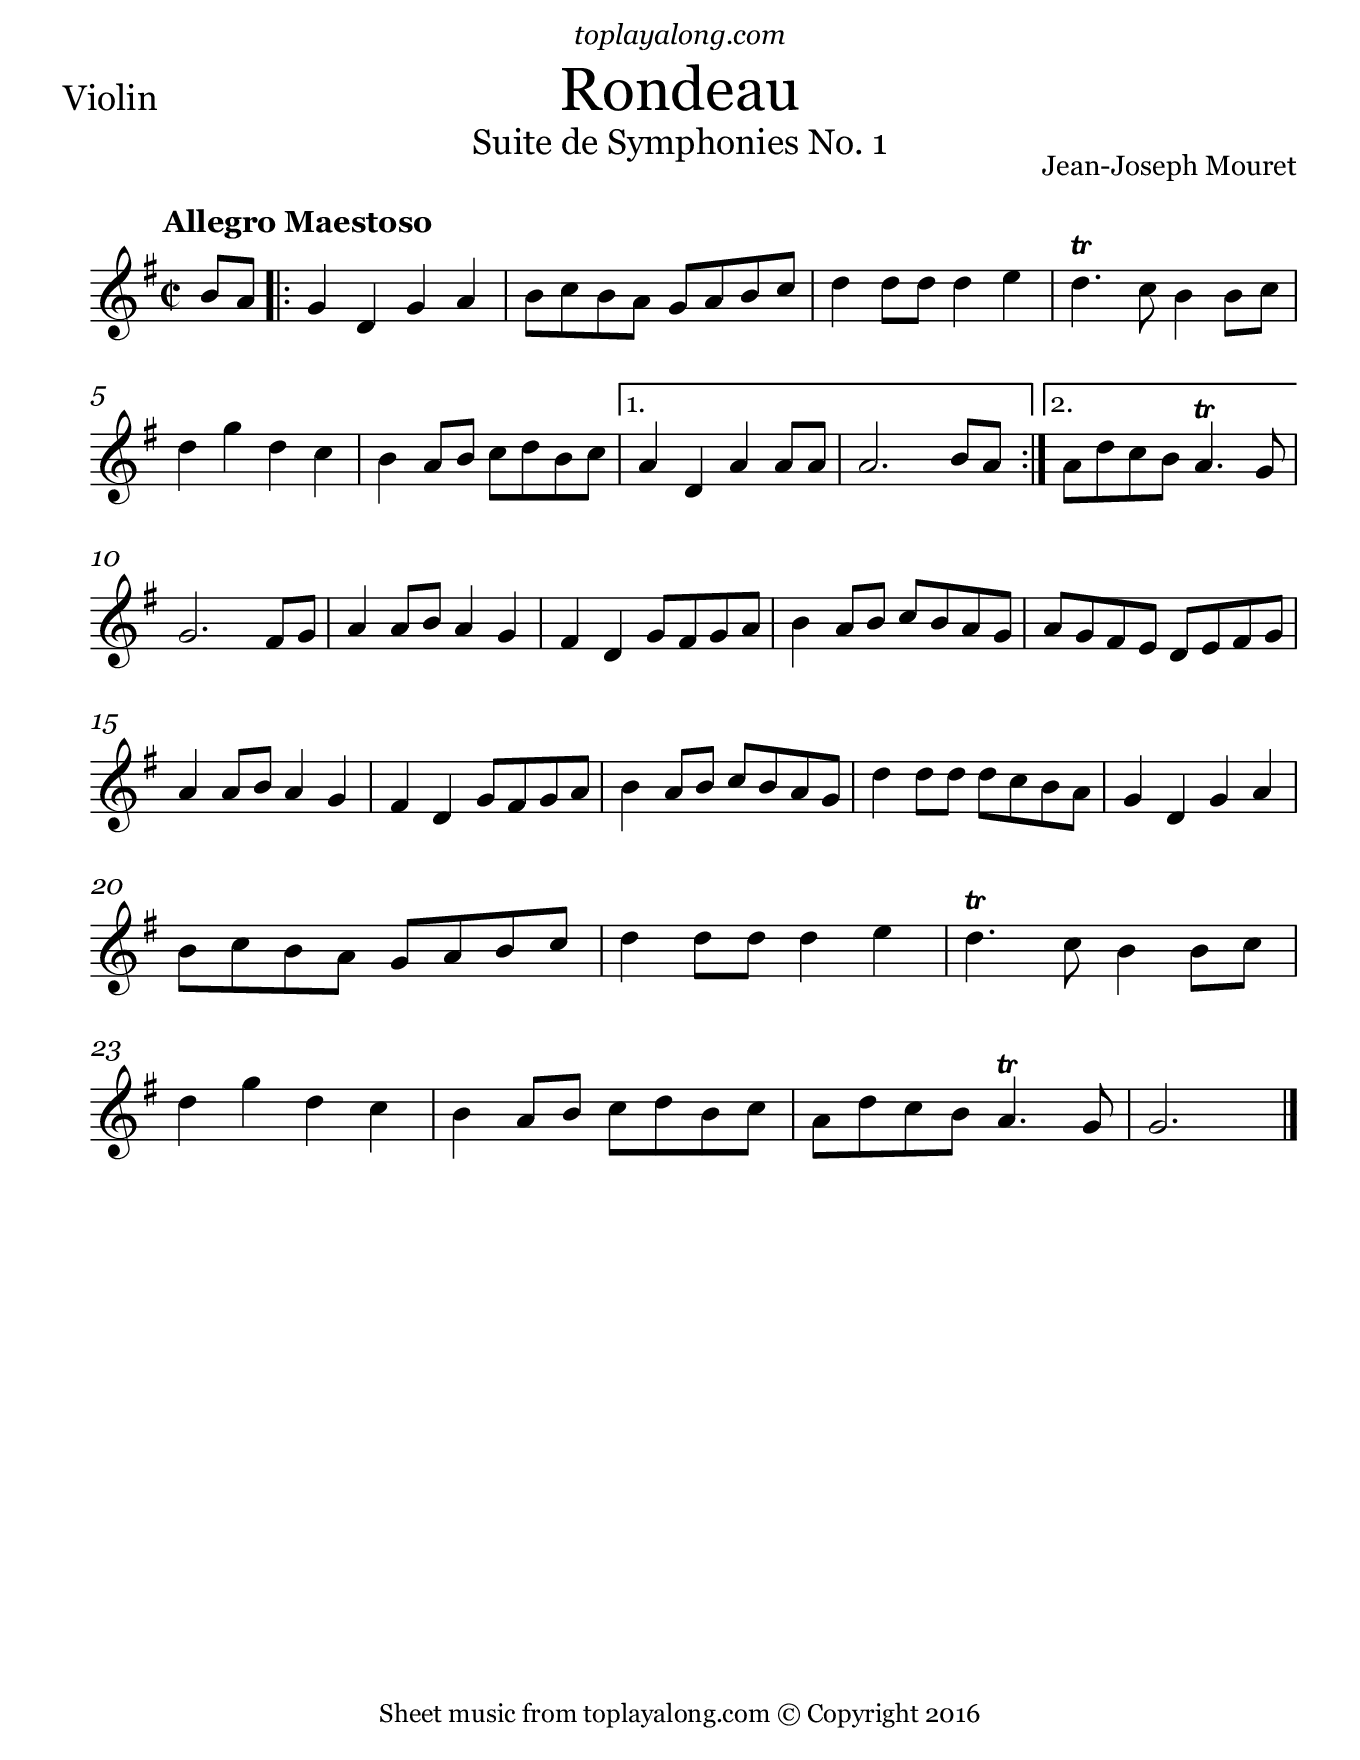 Rondeau from Suites de Symphonies by Mouret. Sheet music for Violin, page 1.